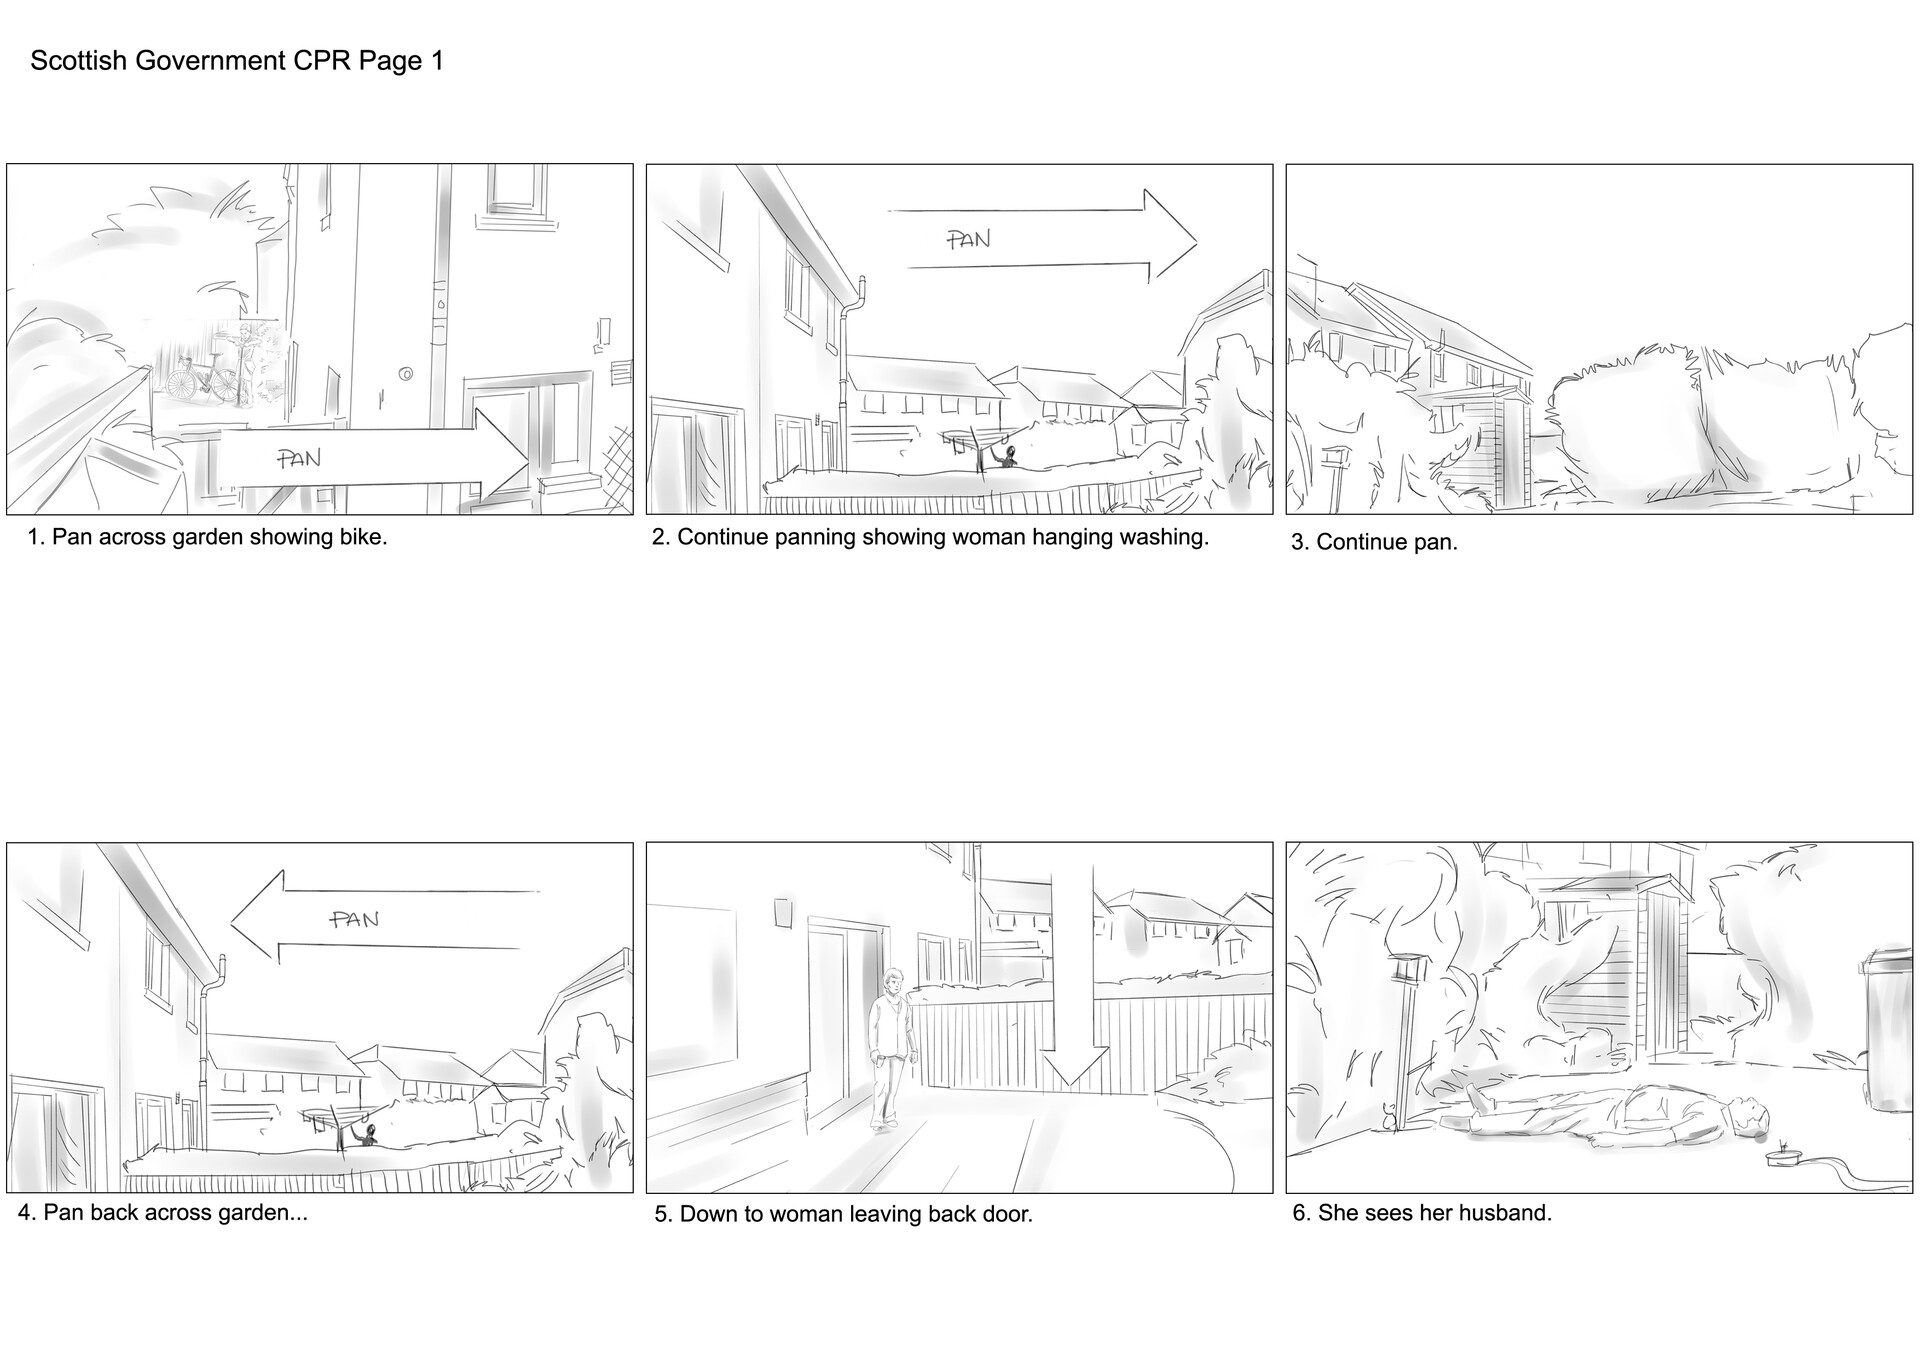 David newbigging save a life for scotland storyboards v2 1